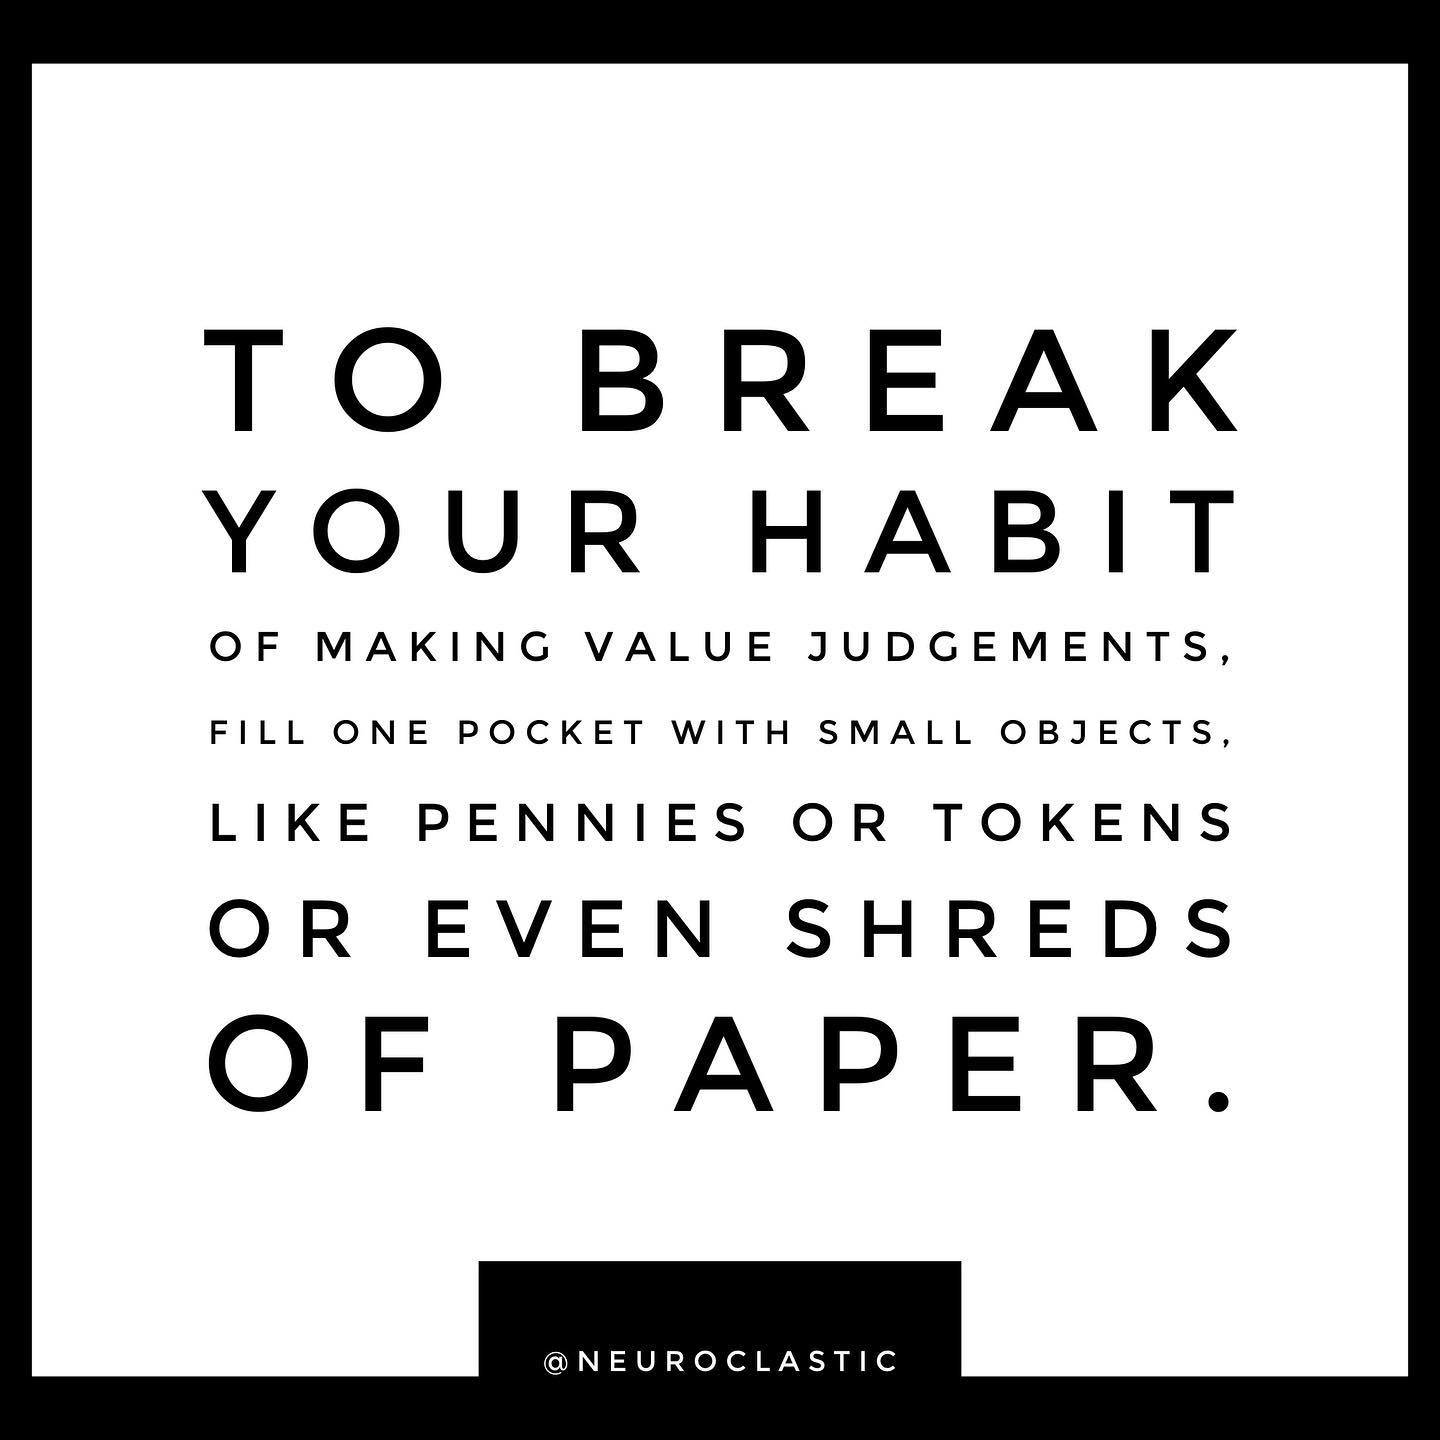 To break your habit of making value judgements, fill one pocket with small objects, like pennies or tokens or even shreds of paper. @NeuroClastic